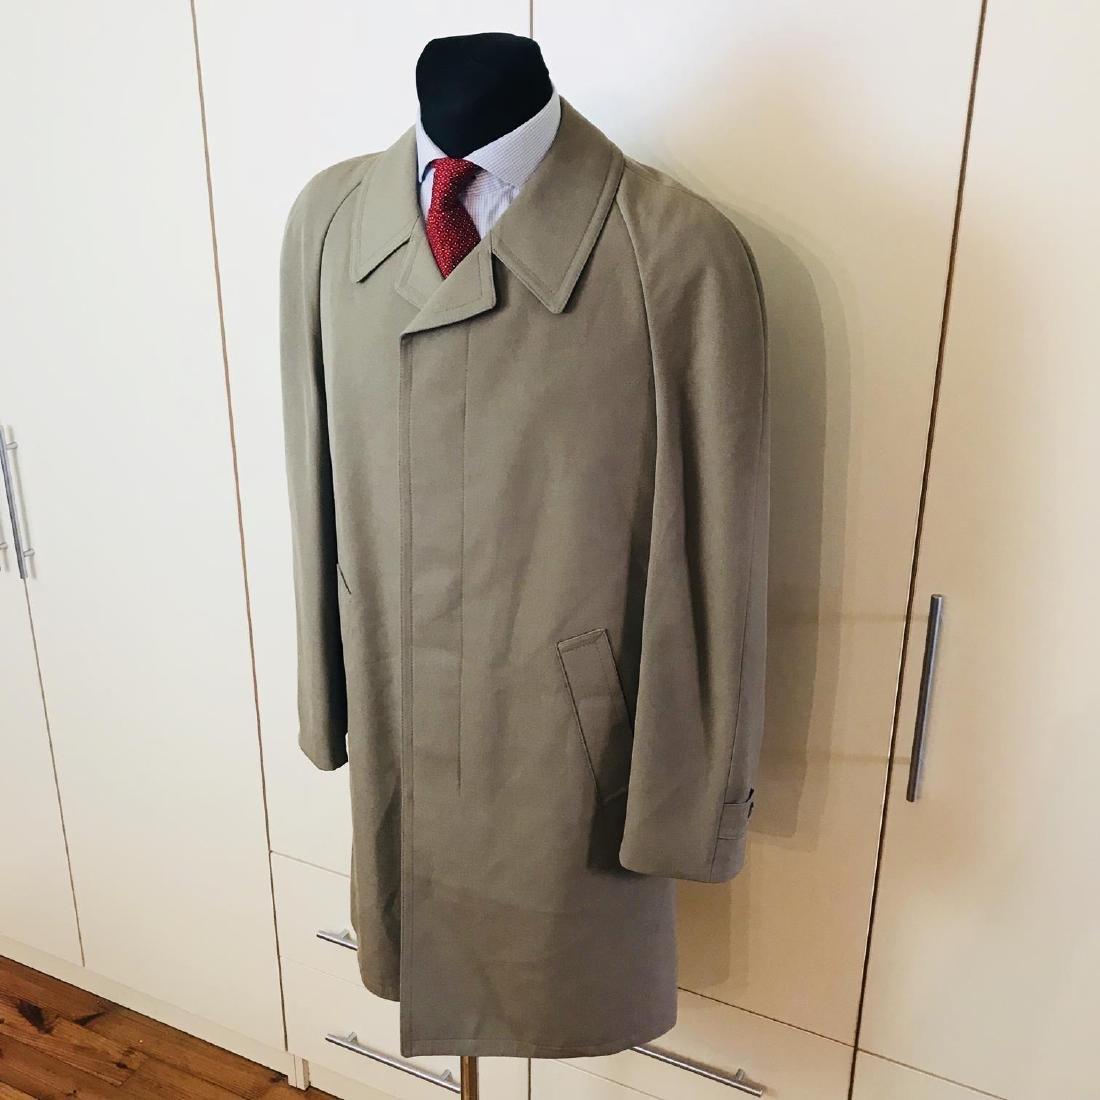 Vintage Men's Trench Coat Size US 38 EUR 48 - 3